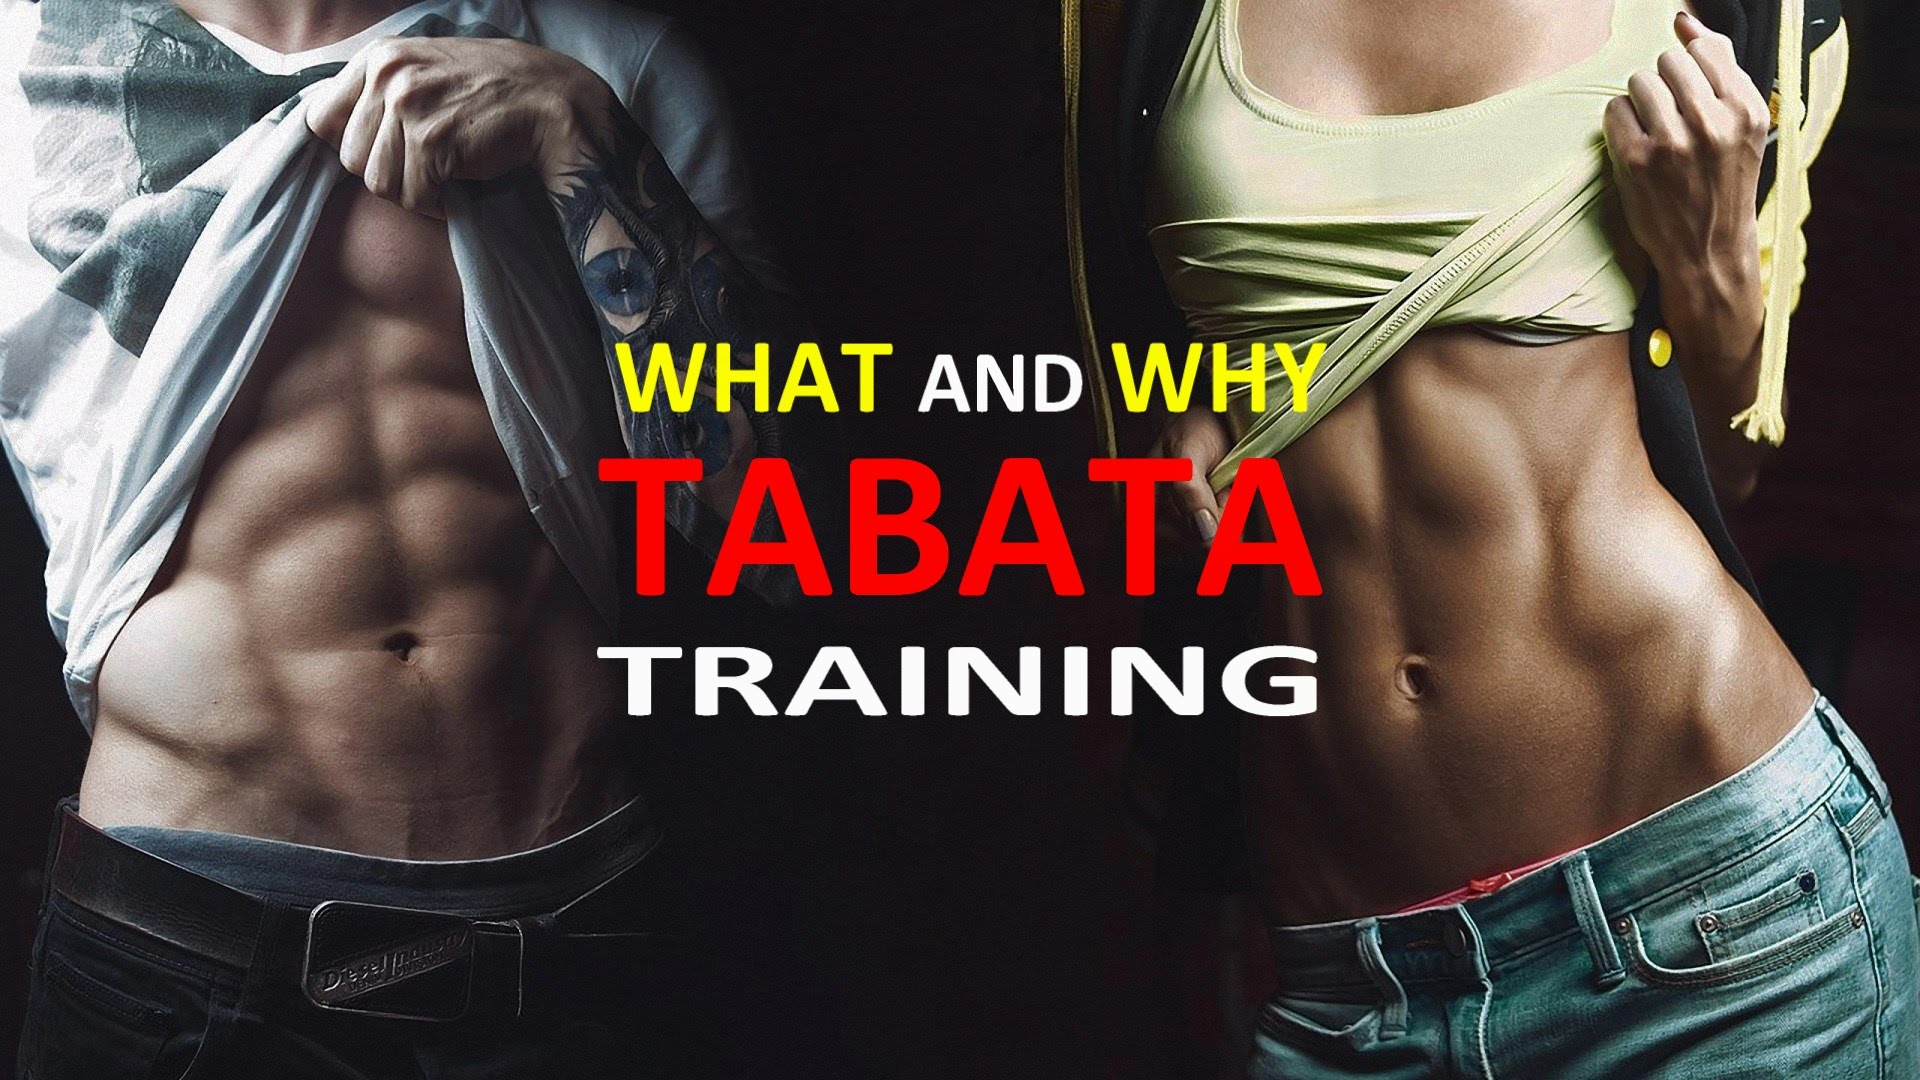 PC: Tabata Workout Music